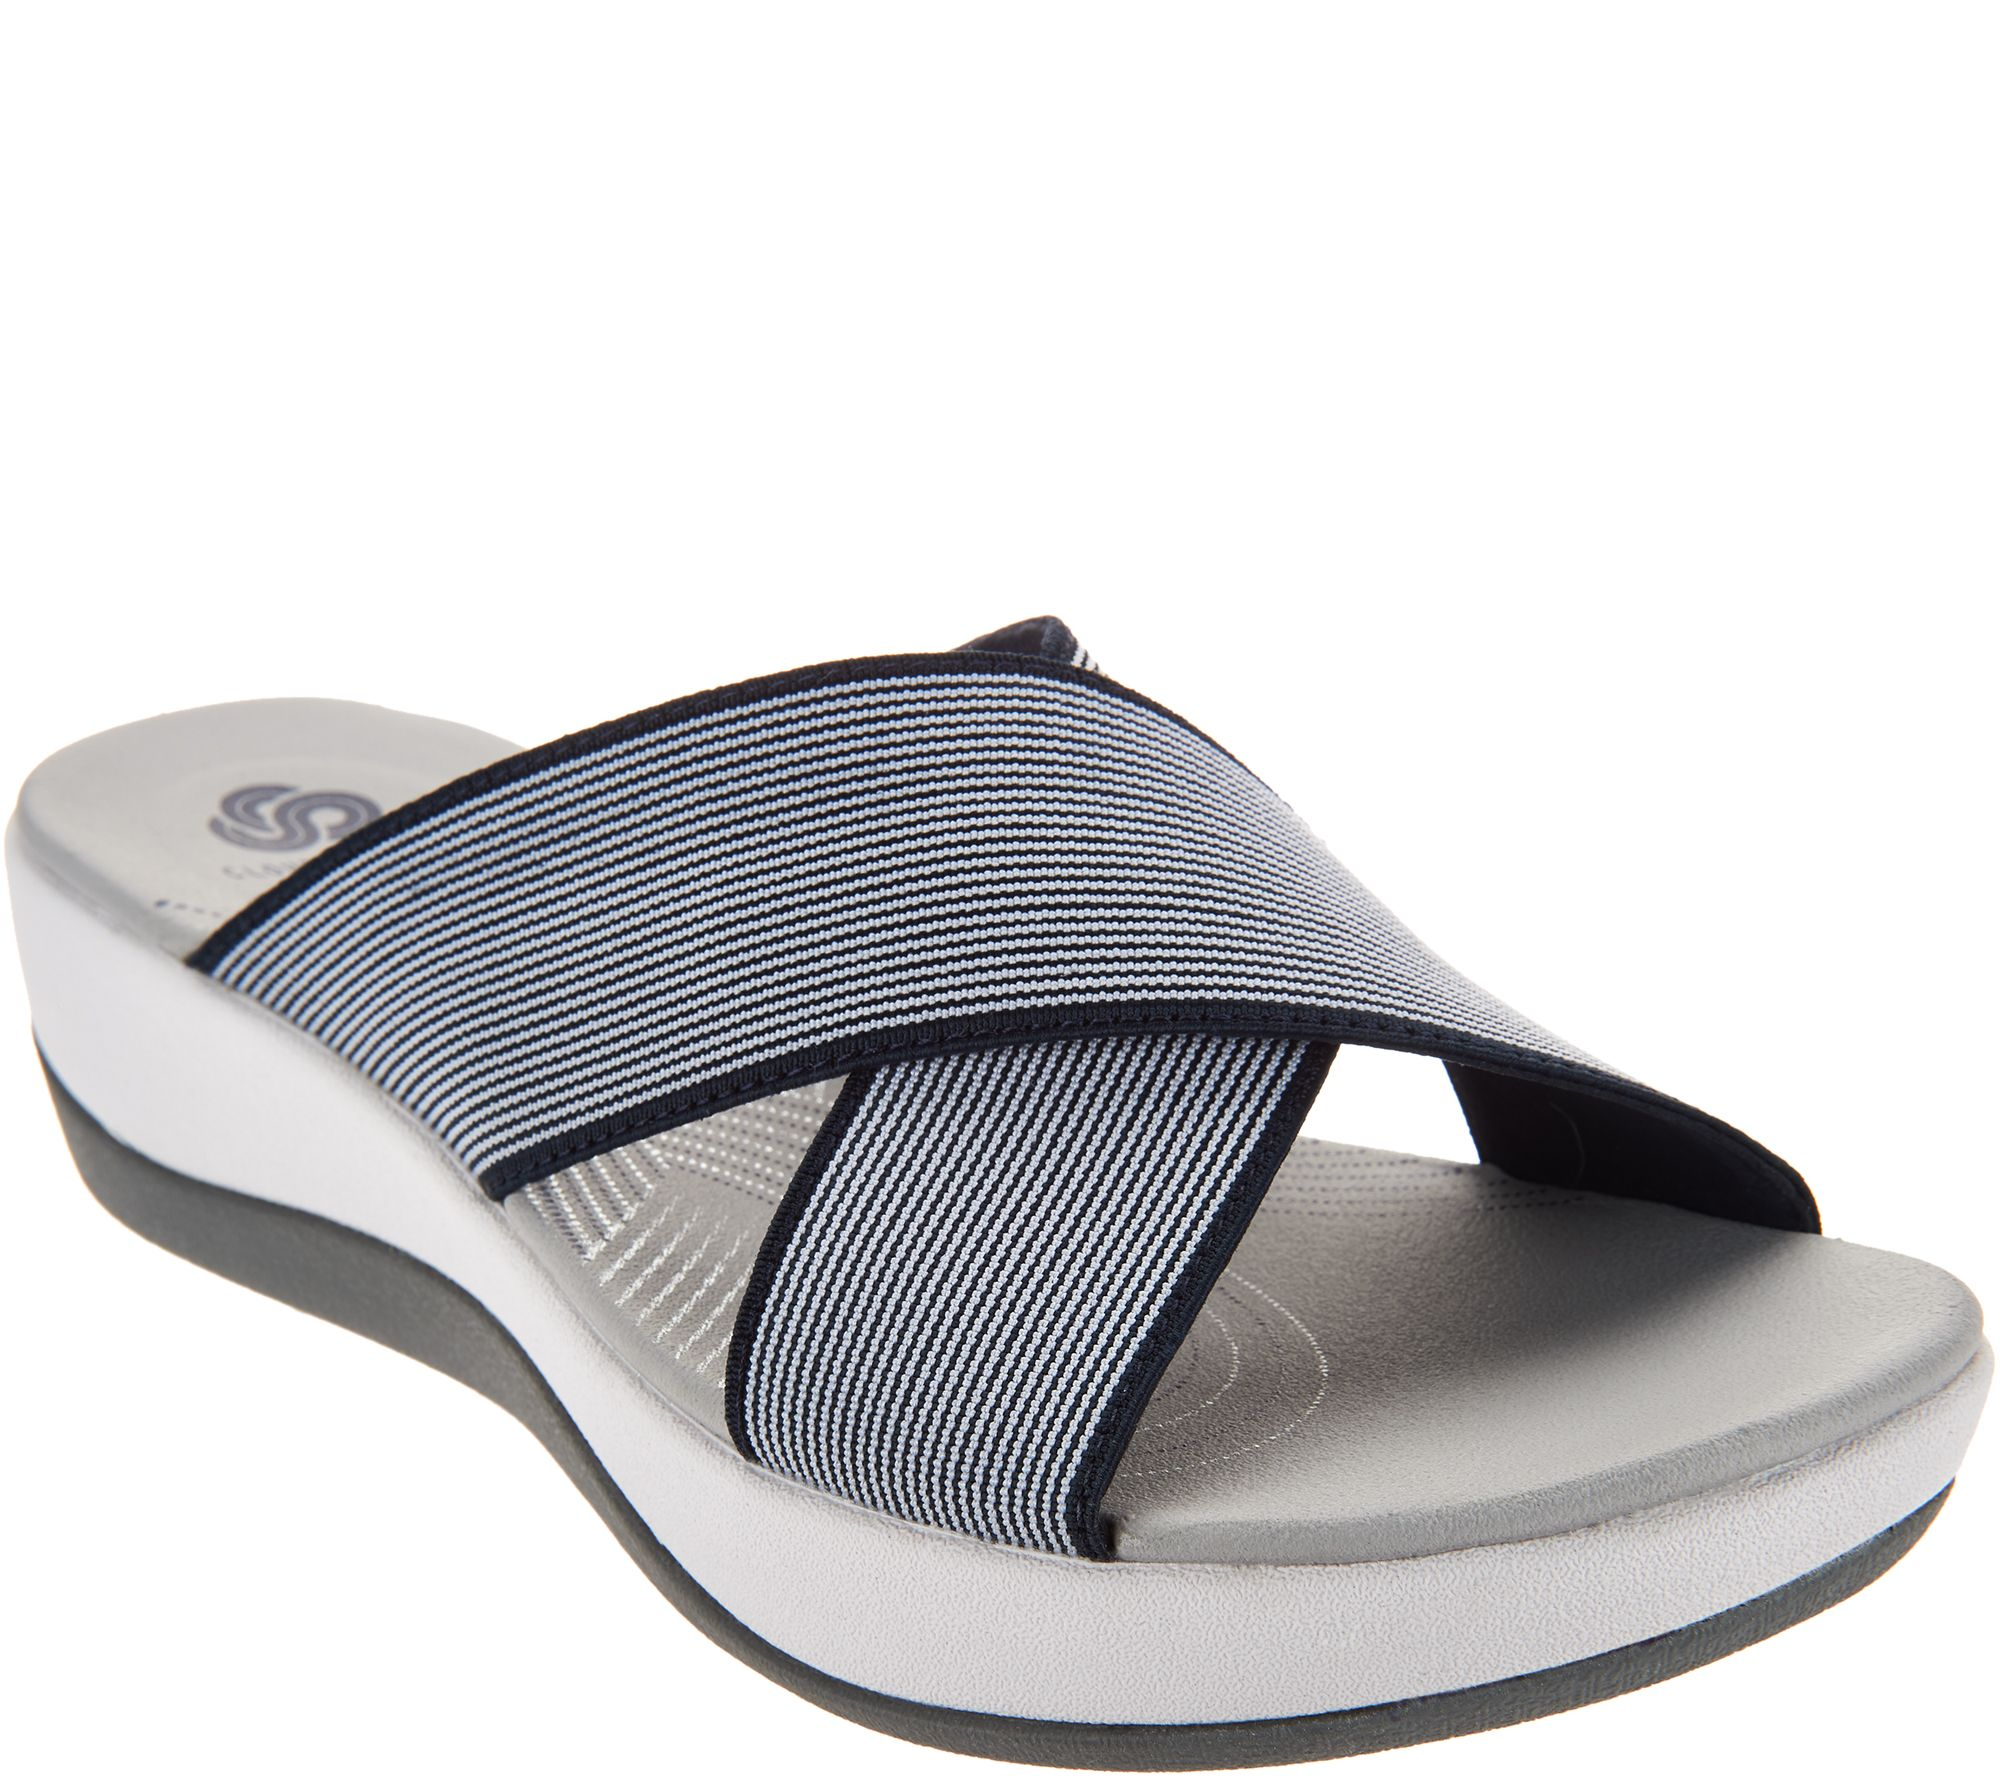 85b660c80 CLOUDSTEPPERS by Clarks Cross Band Slide Sandals - Arla Elin - Page 1 —  QVC.com